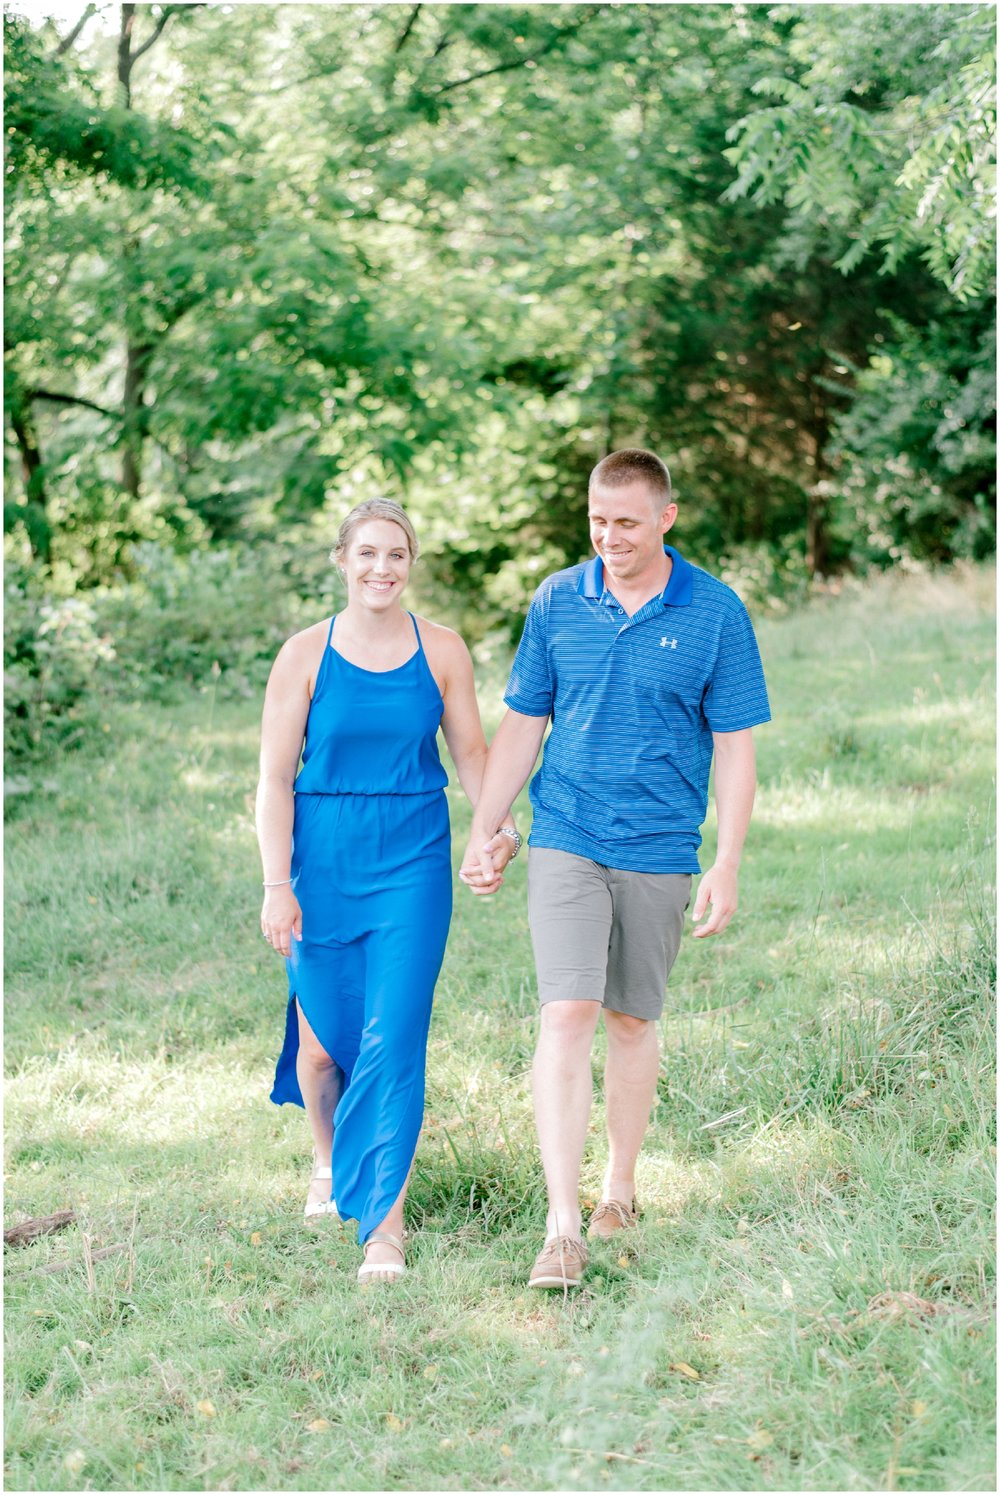 Summer Private Farm Engagement Session - Krista Brackin Photography_0001.jpg